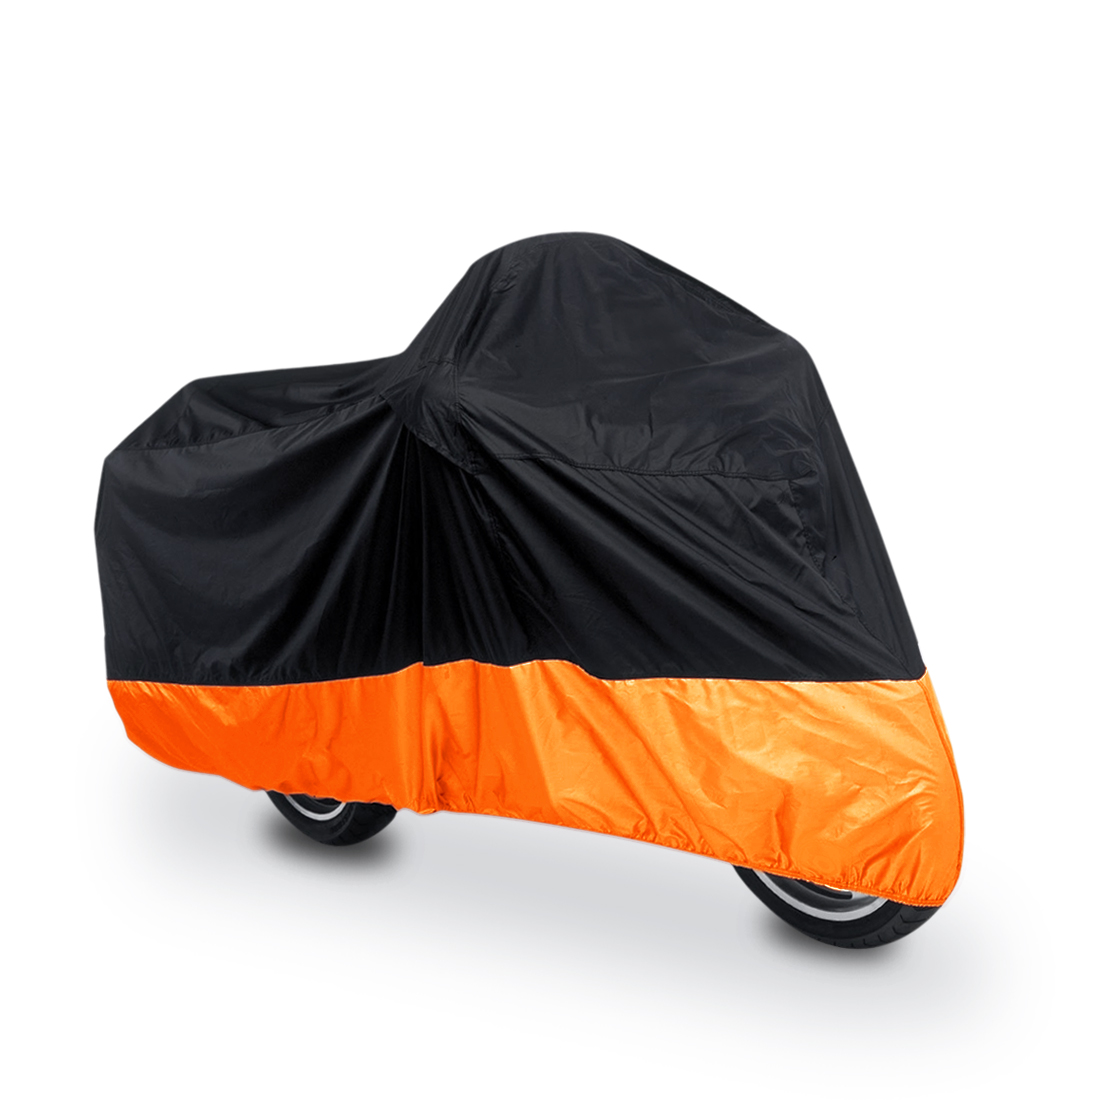 180T Polyester Taffeta Outdoor Waterproof Motorcycle Cover Protector